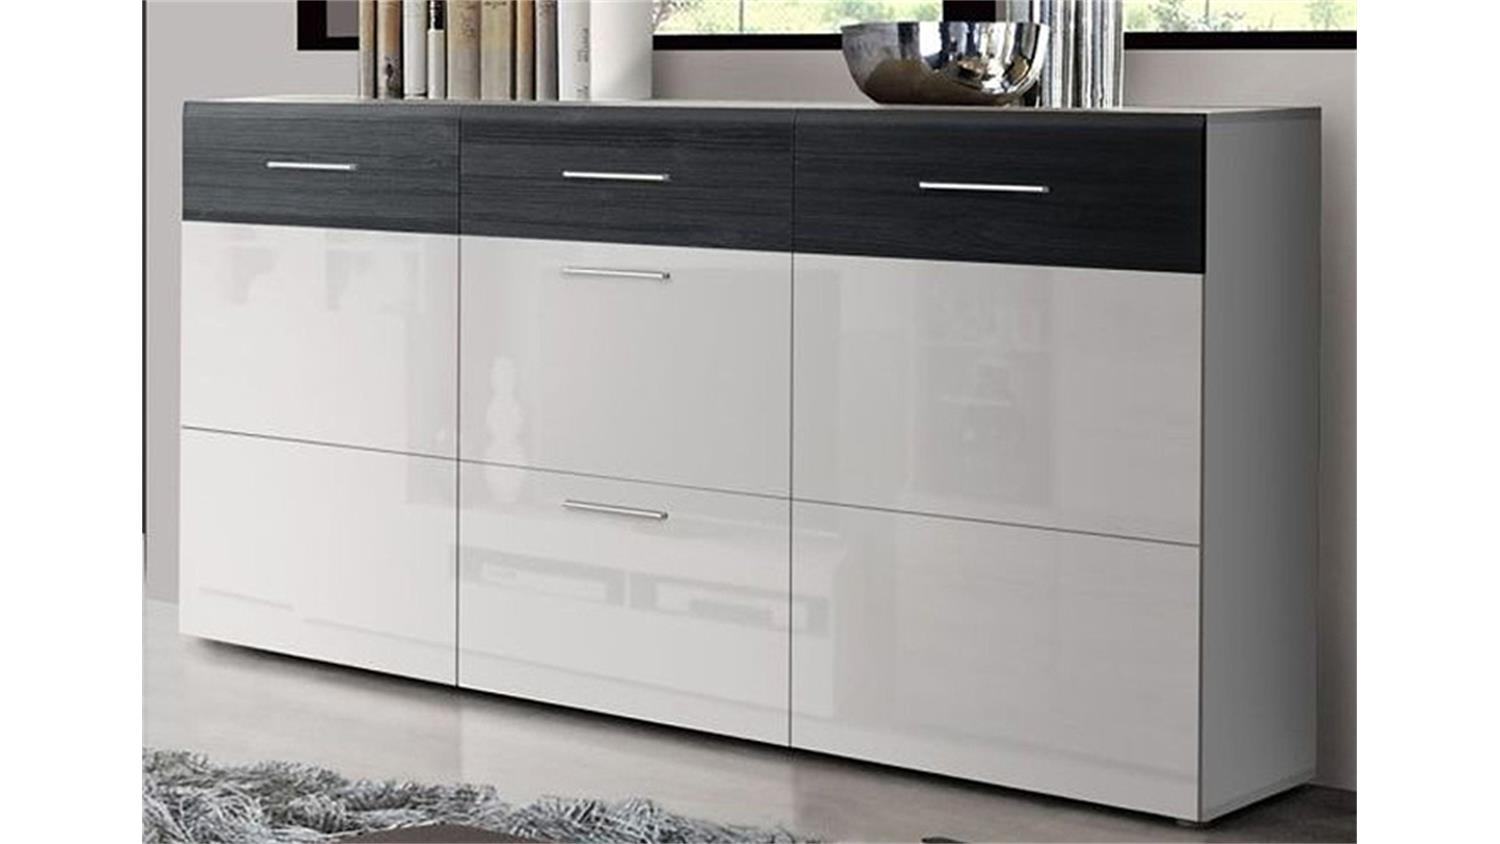 Mobel kommode hochglanz die neueste innovation der for Sideboard verspiegelt